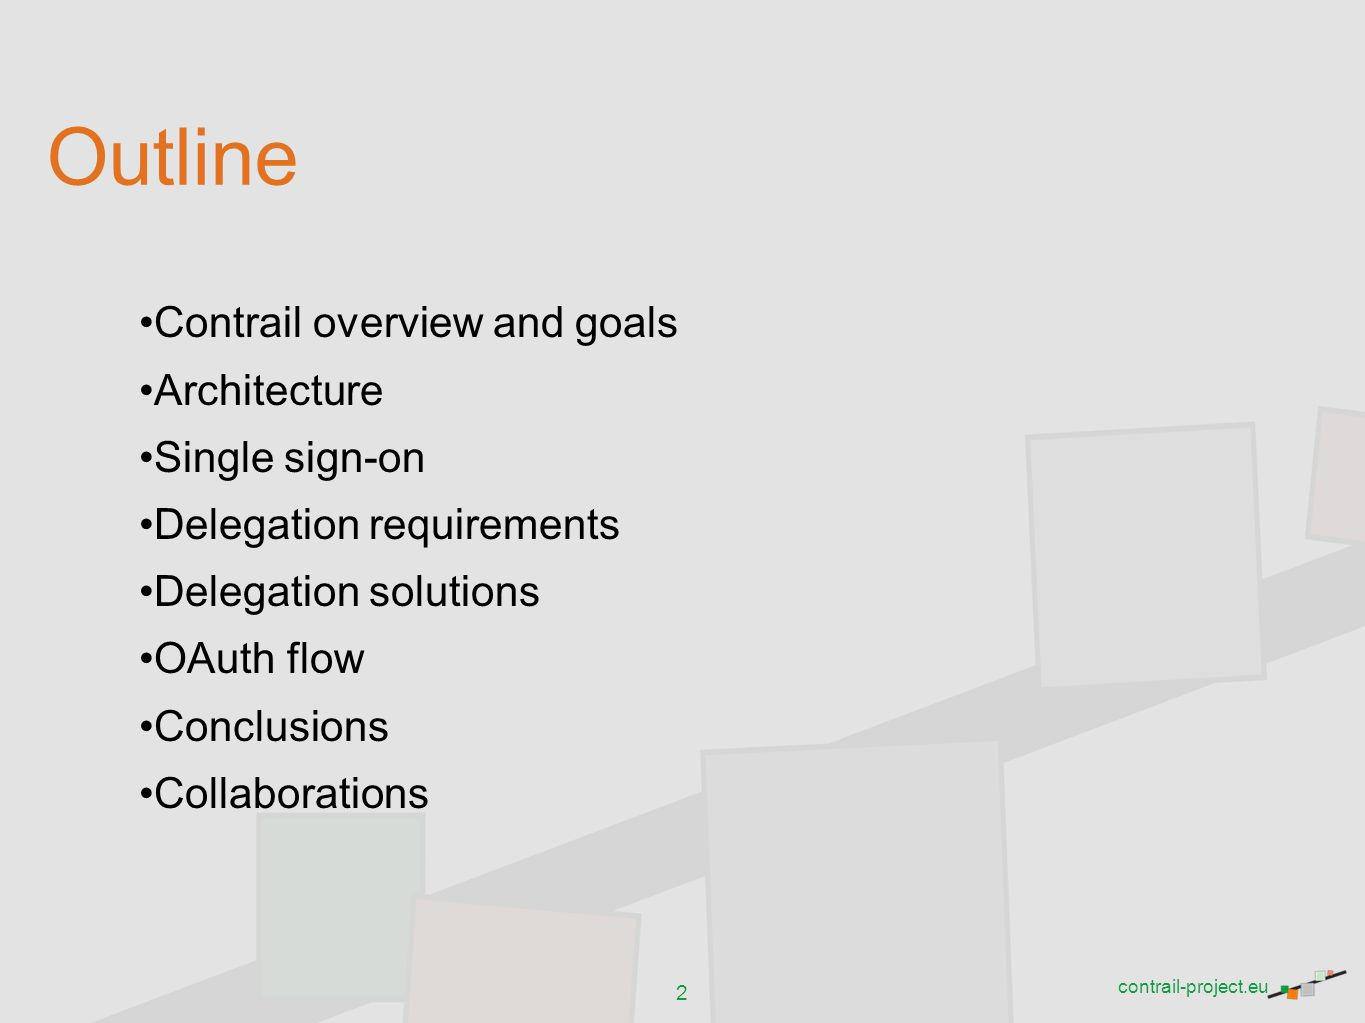 Outline Contrail Overview And Goals Architecture Single Sign On